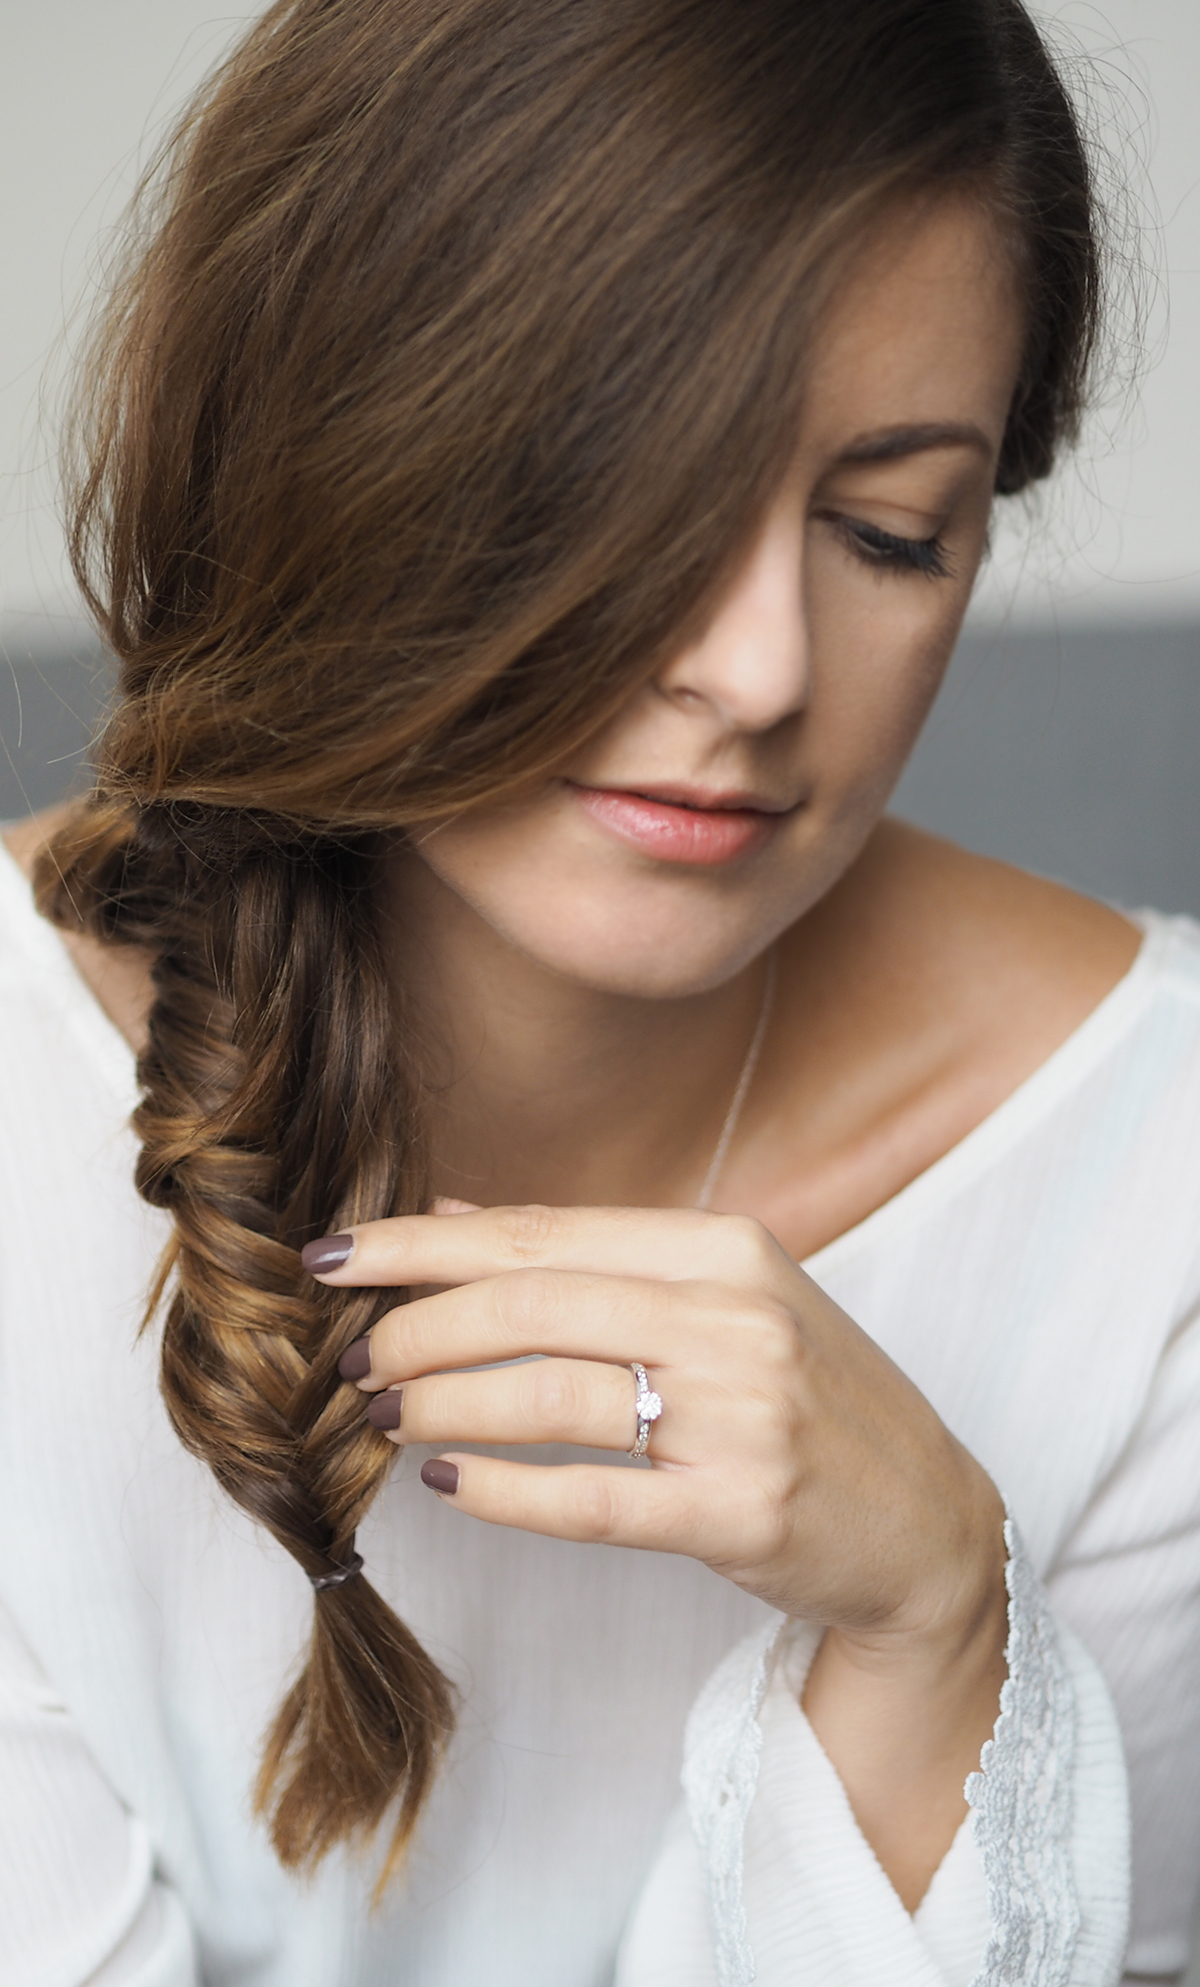 australian hair style n easy festive braid hairstyle beautyressort 3525